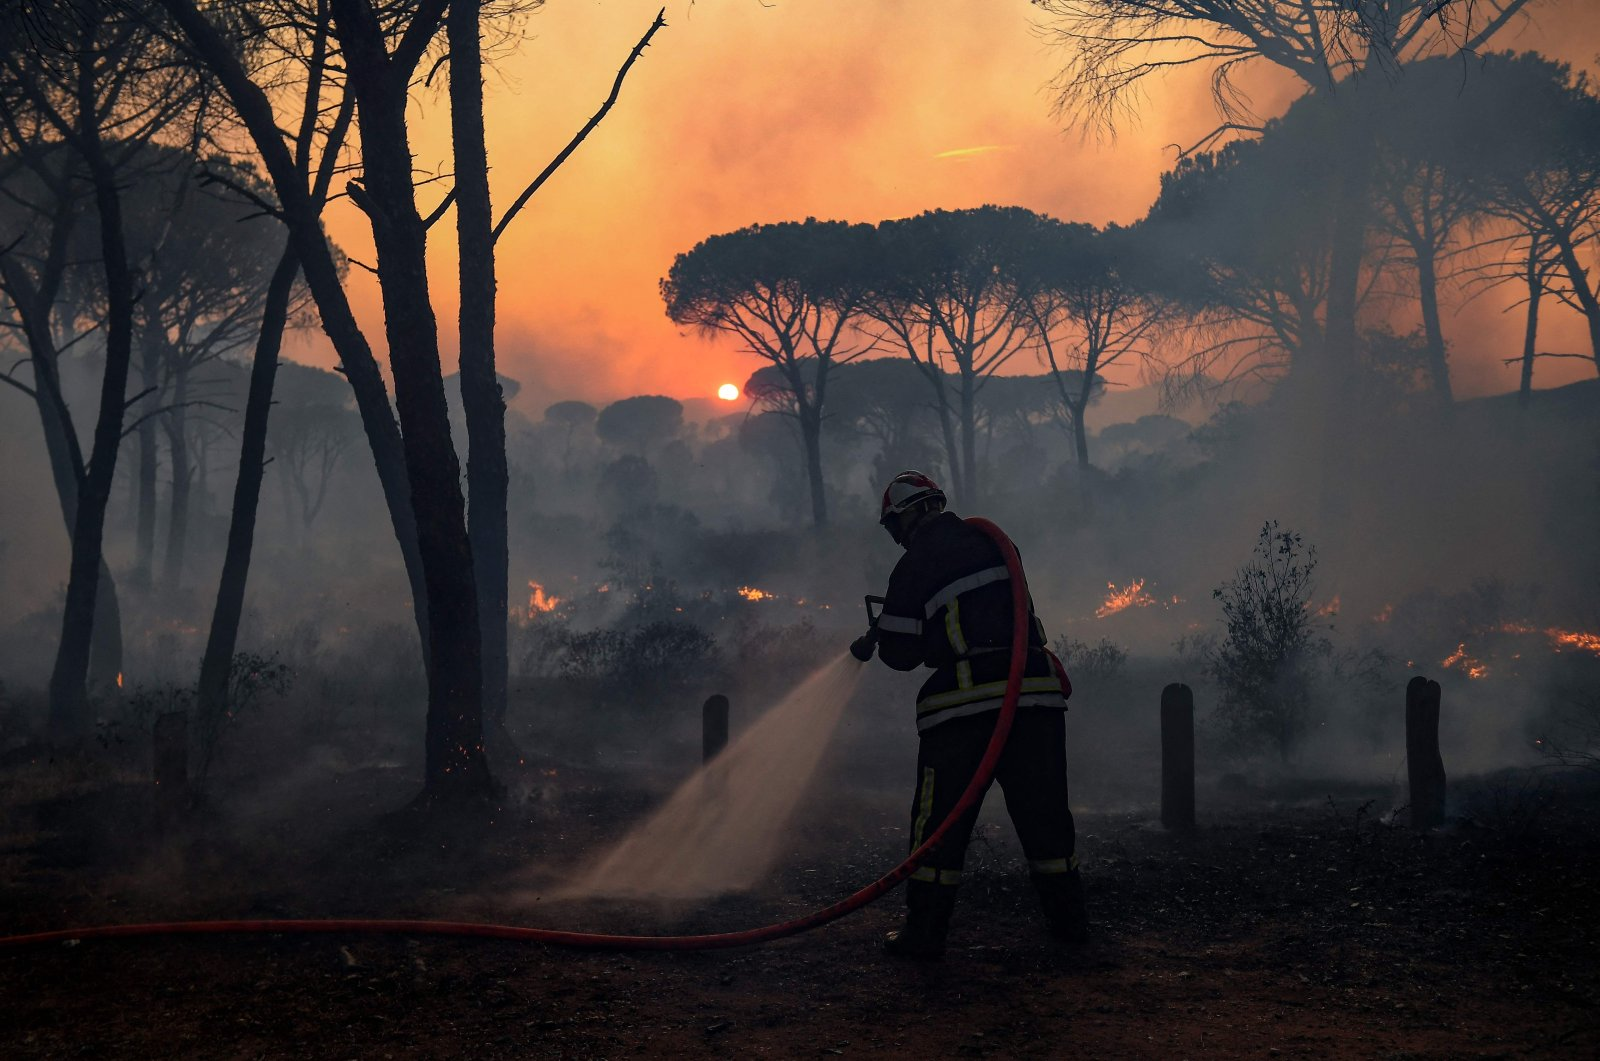 A French firefighter uses a water hose as light from the setting sun is filtered through smoke during a forest wildfire, near Gonfaron, in Var Prefecture, southern France, Aug. 17, 2021. (AFP Photo)